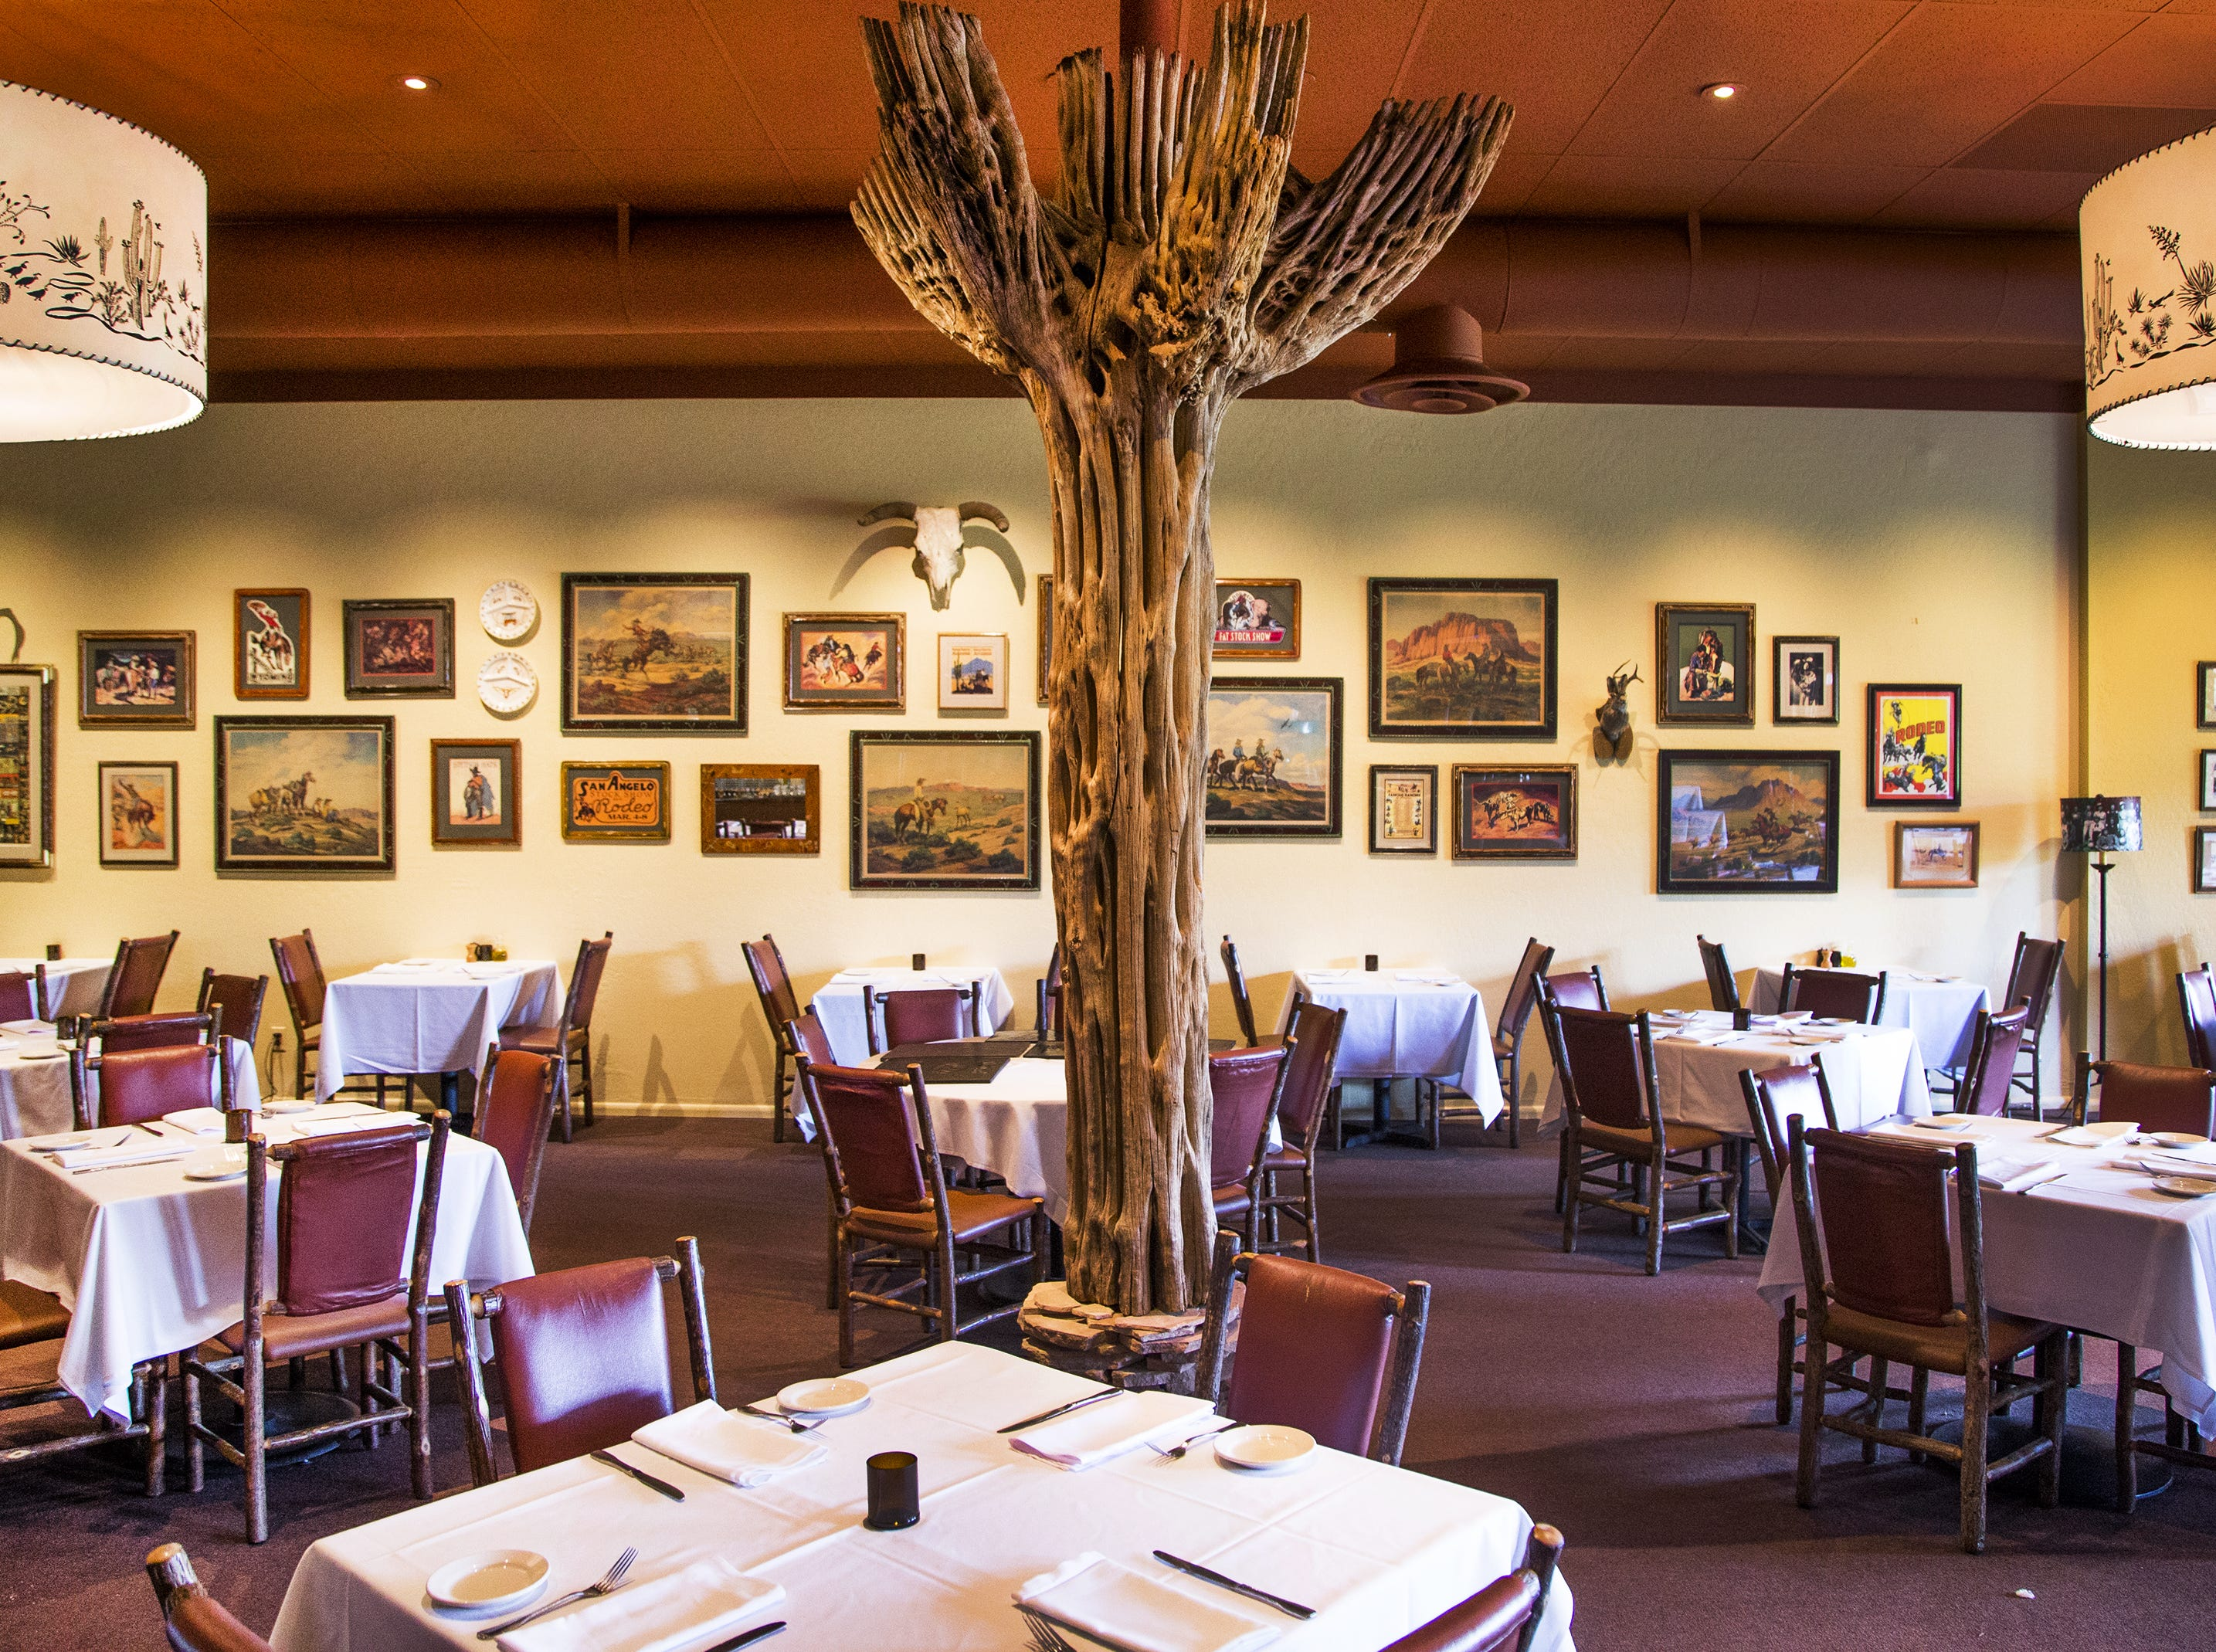 This is the main dining room of the restaurant Rancho Pinot, in Scottsdale, Tuesday, Oct. 16, 2018.